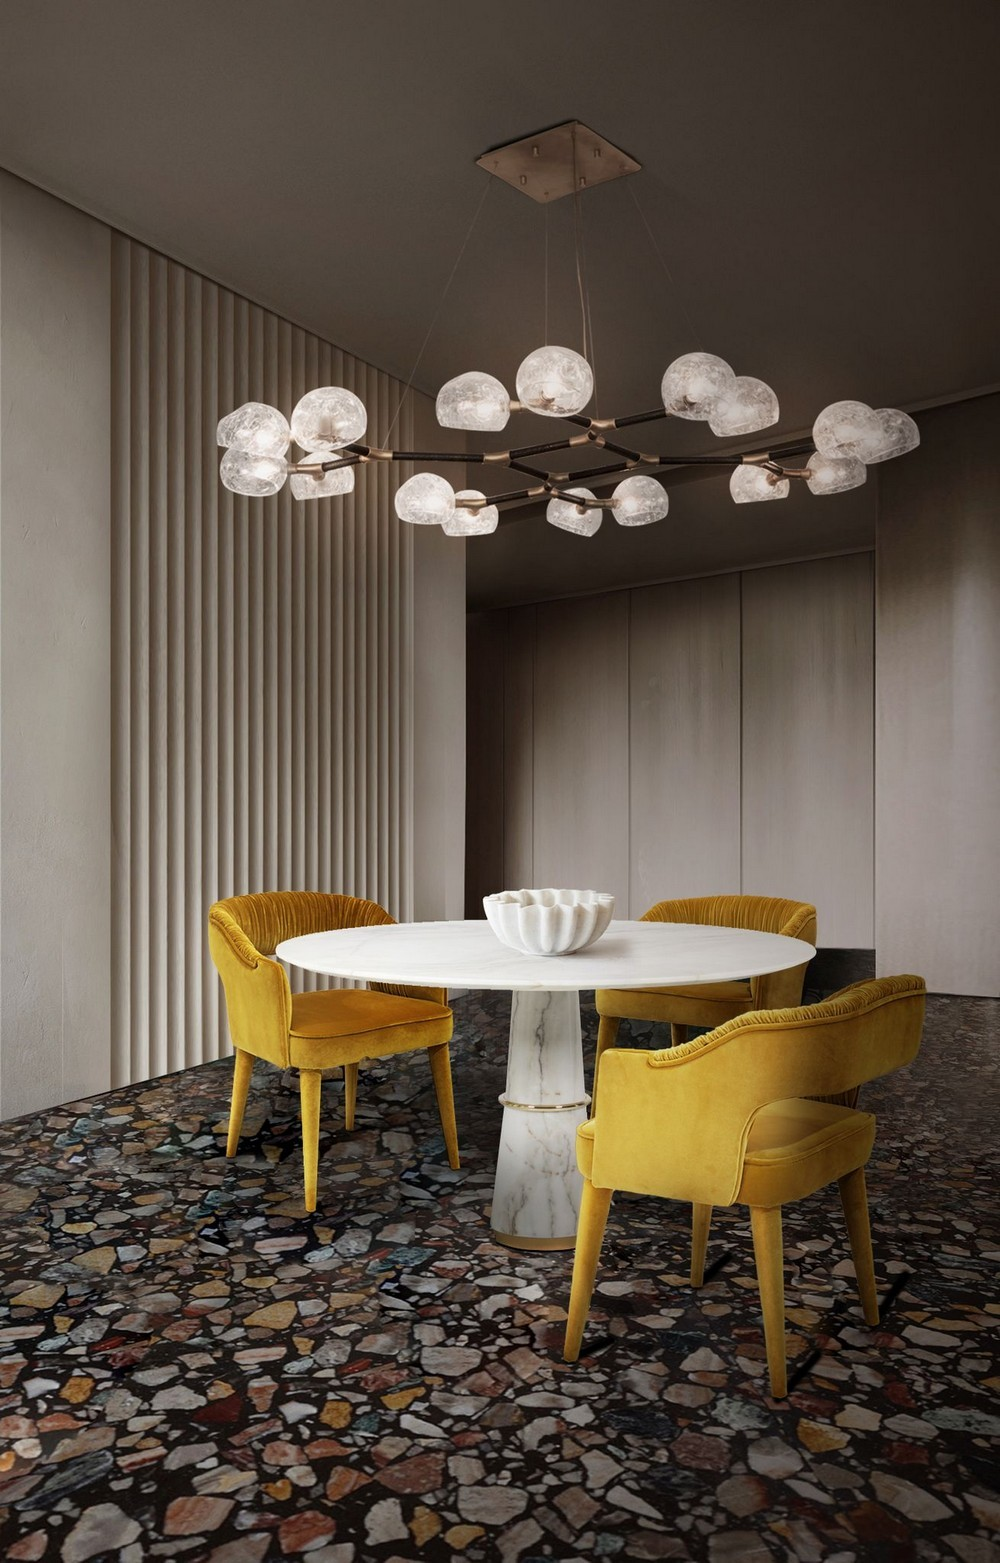 Luxury Dining Chairs To Transform Your Next Dining Room Project dining chairs Luxury Dining Chairs To Transform Your Next Dining Room Project 1gPg6 pA